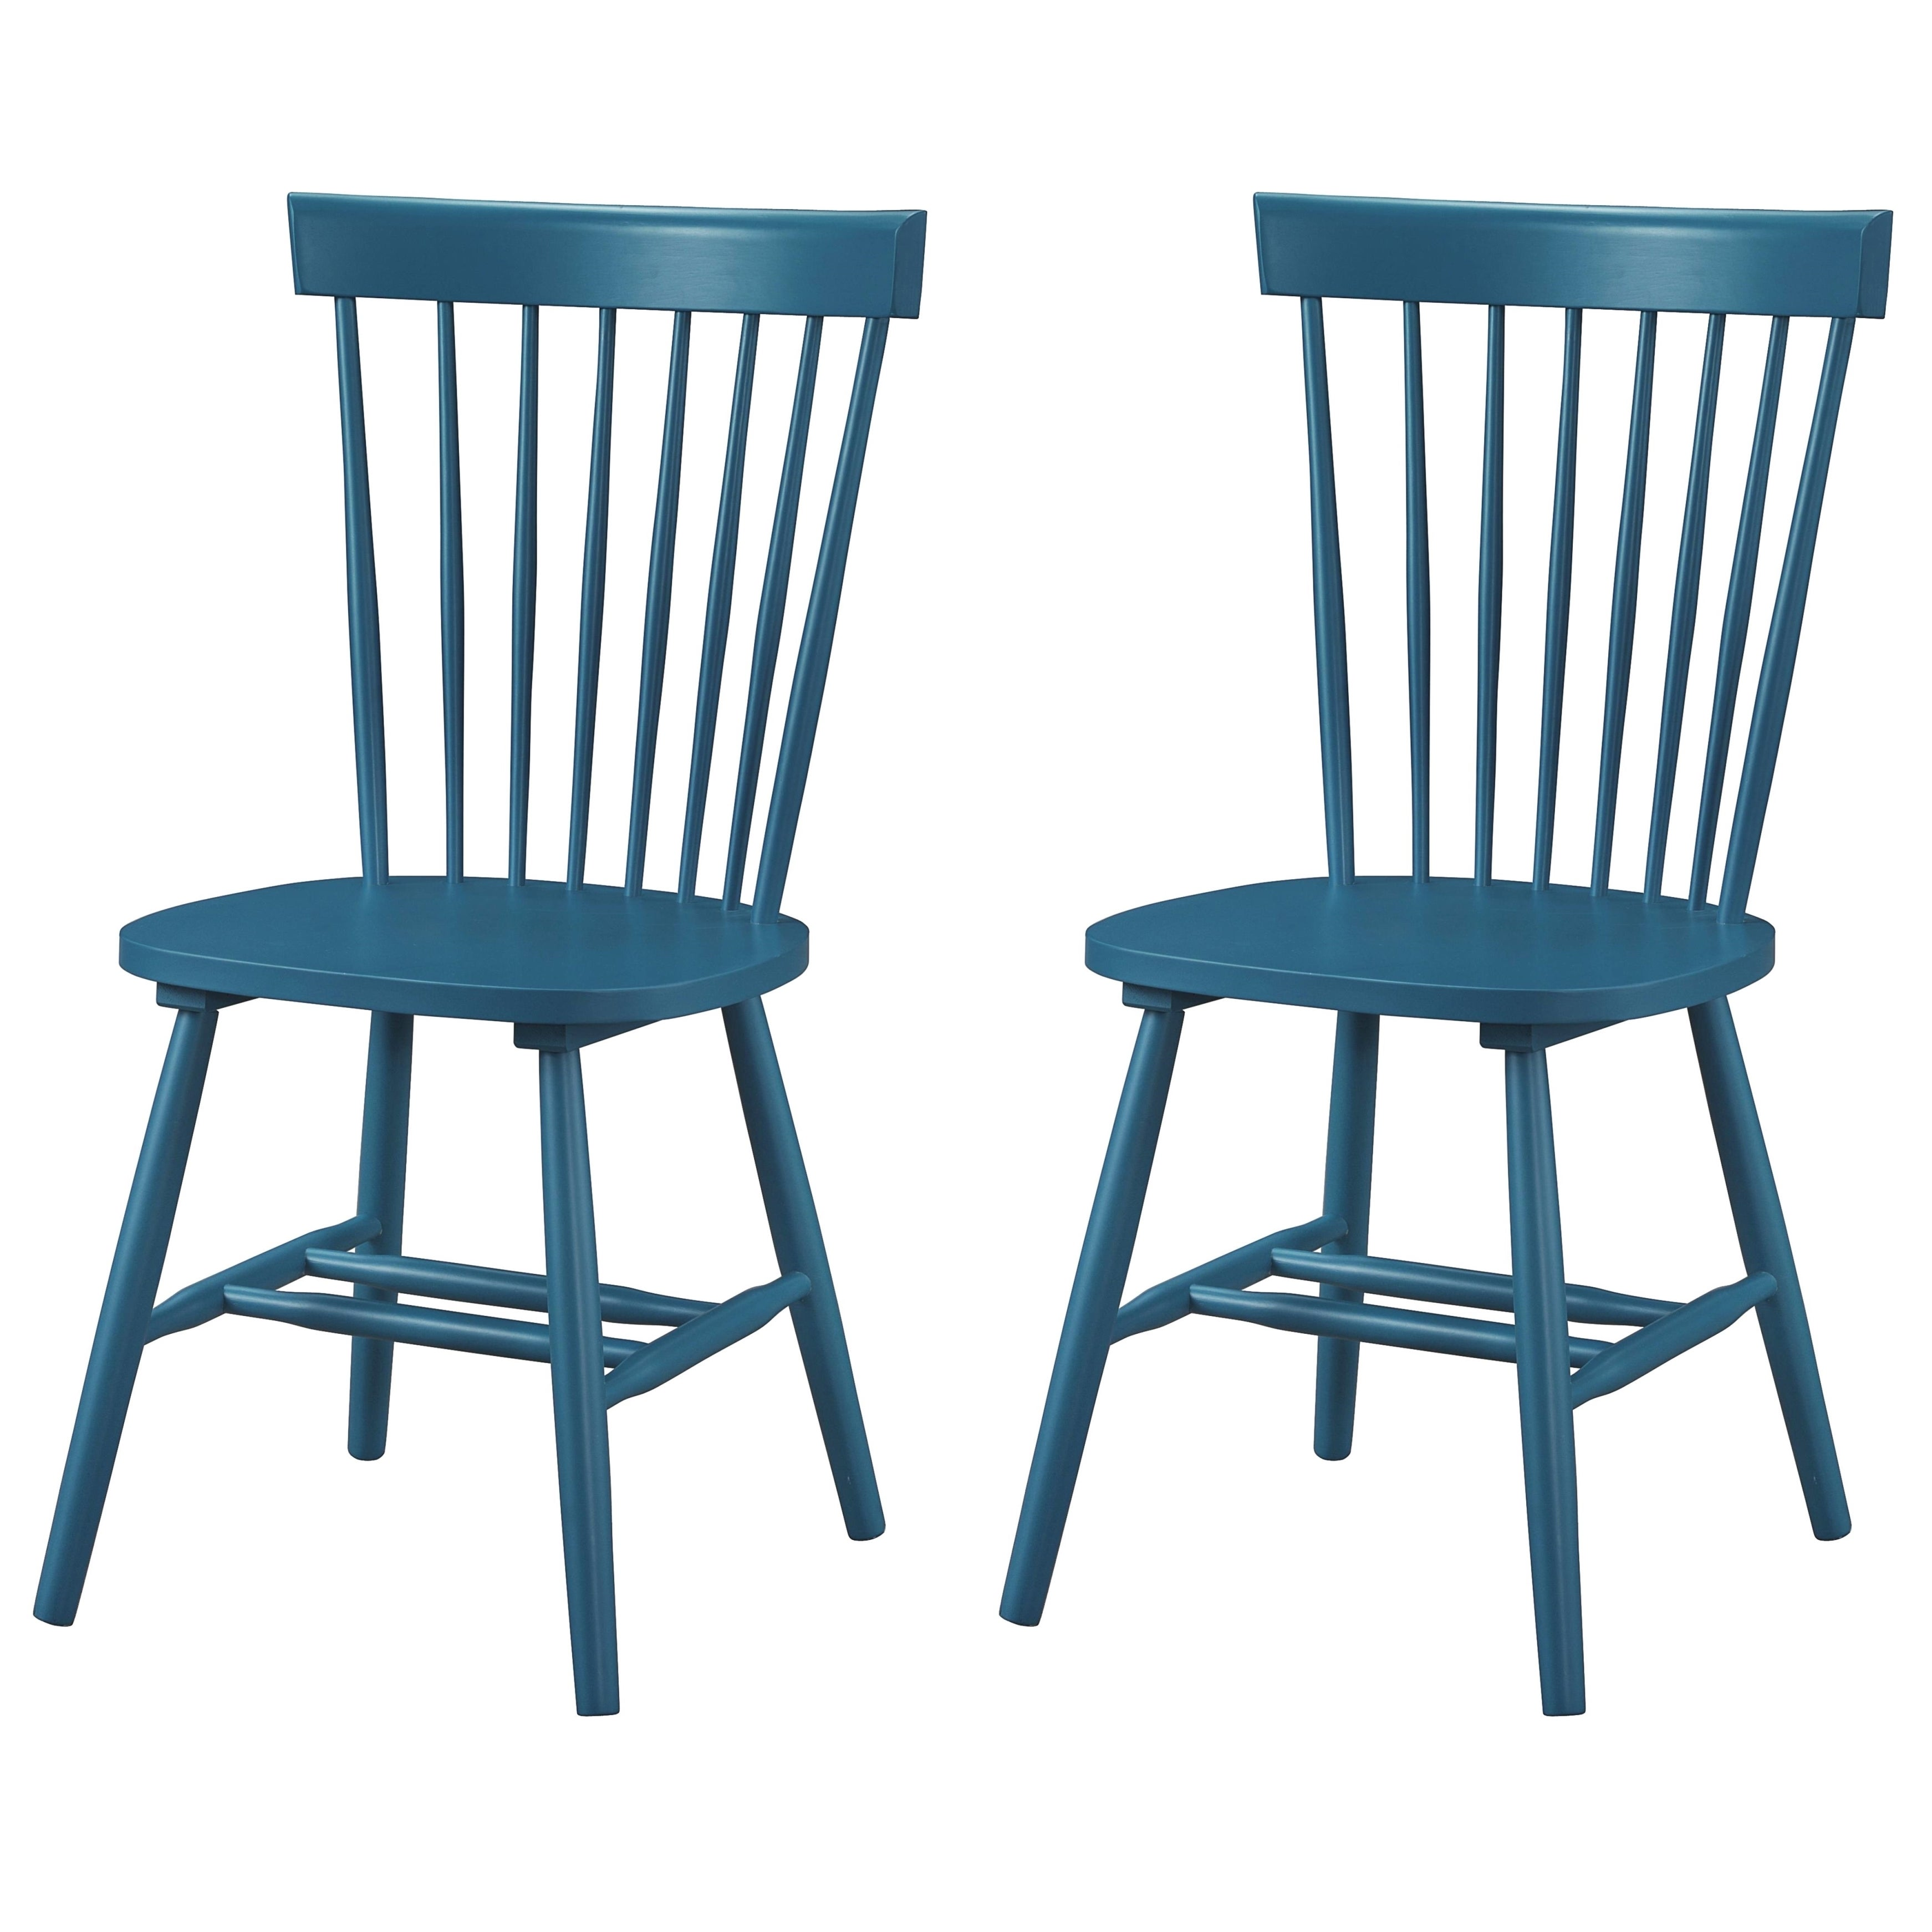 Picture of: Dunner Danish Design Spindle Back Blue Teal Dining Chairs Set Of 2 Overstock 10650182